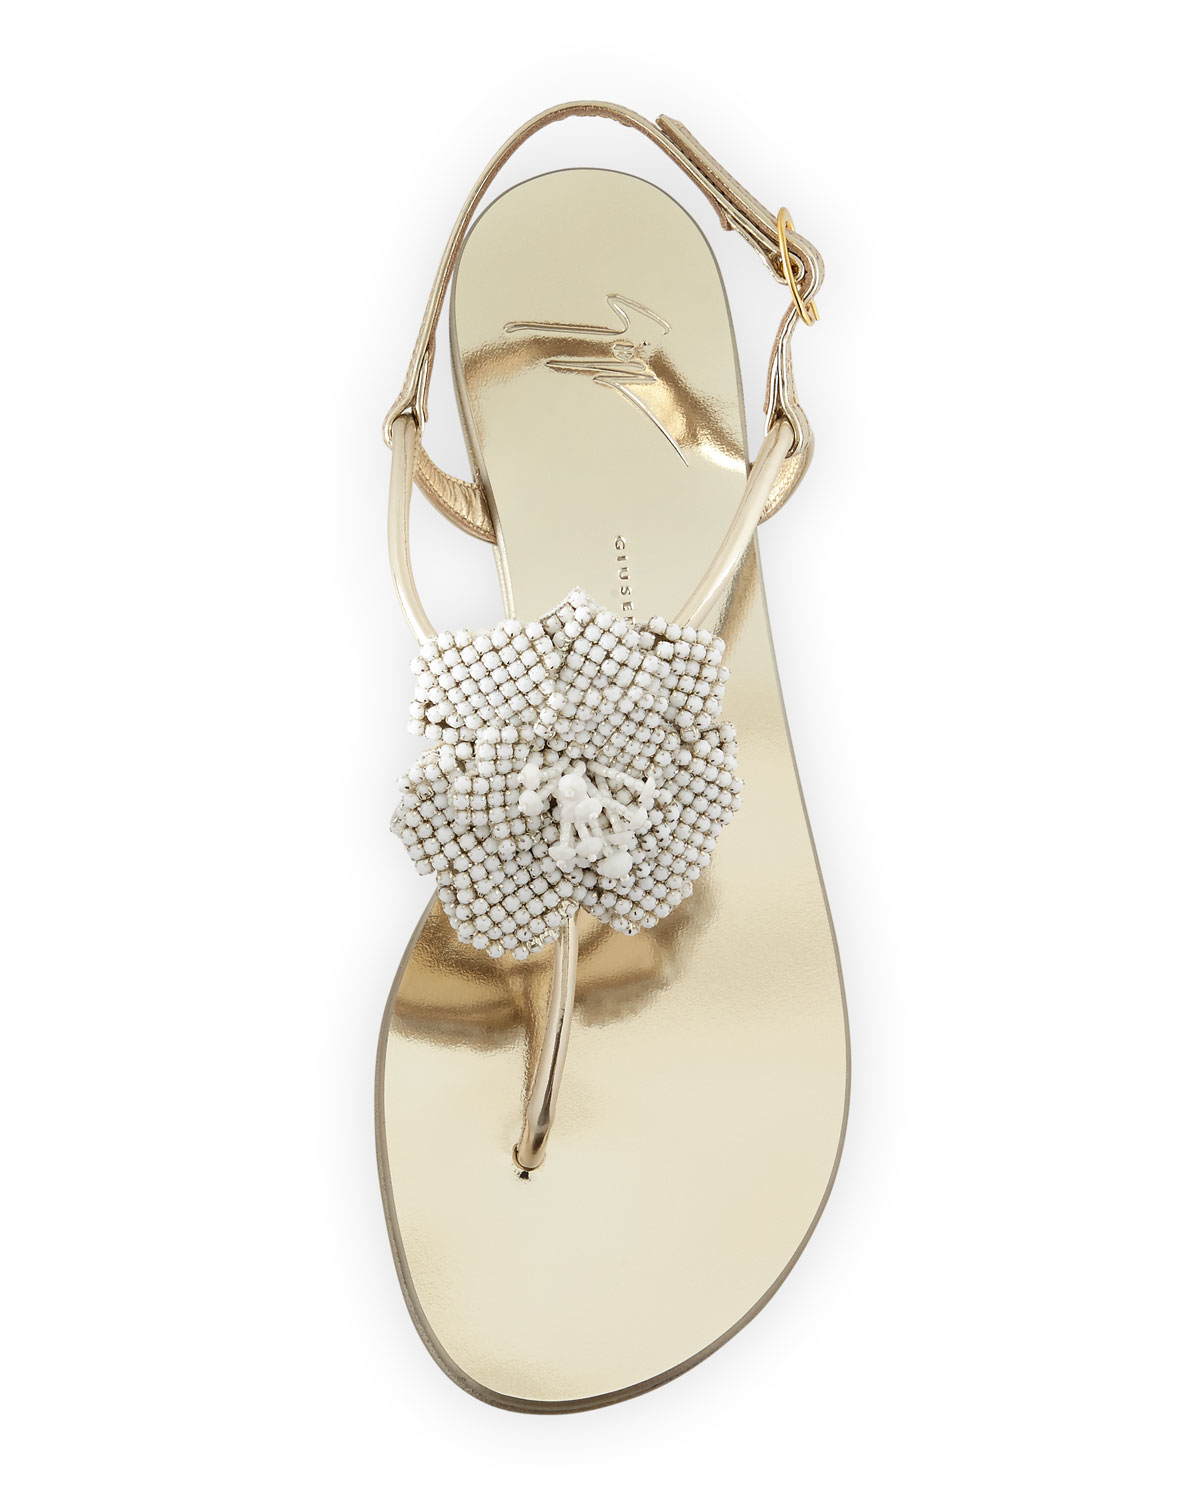 079c51368ffe ... gold 17be9 c711d france lyst giuseppe zanotti metallic crystal leather flat  sandals in 2e22a 399fe ...